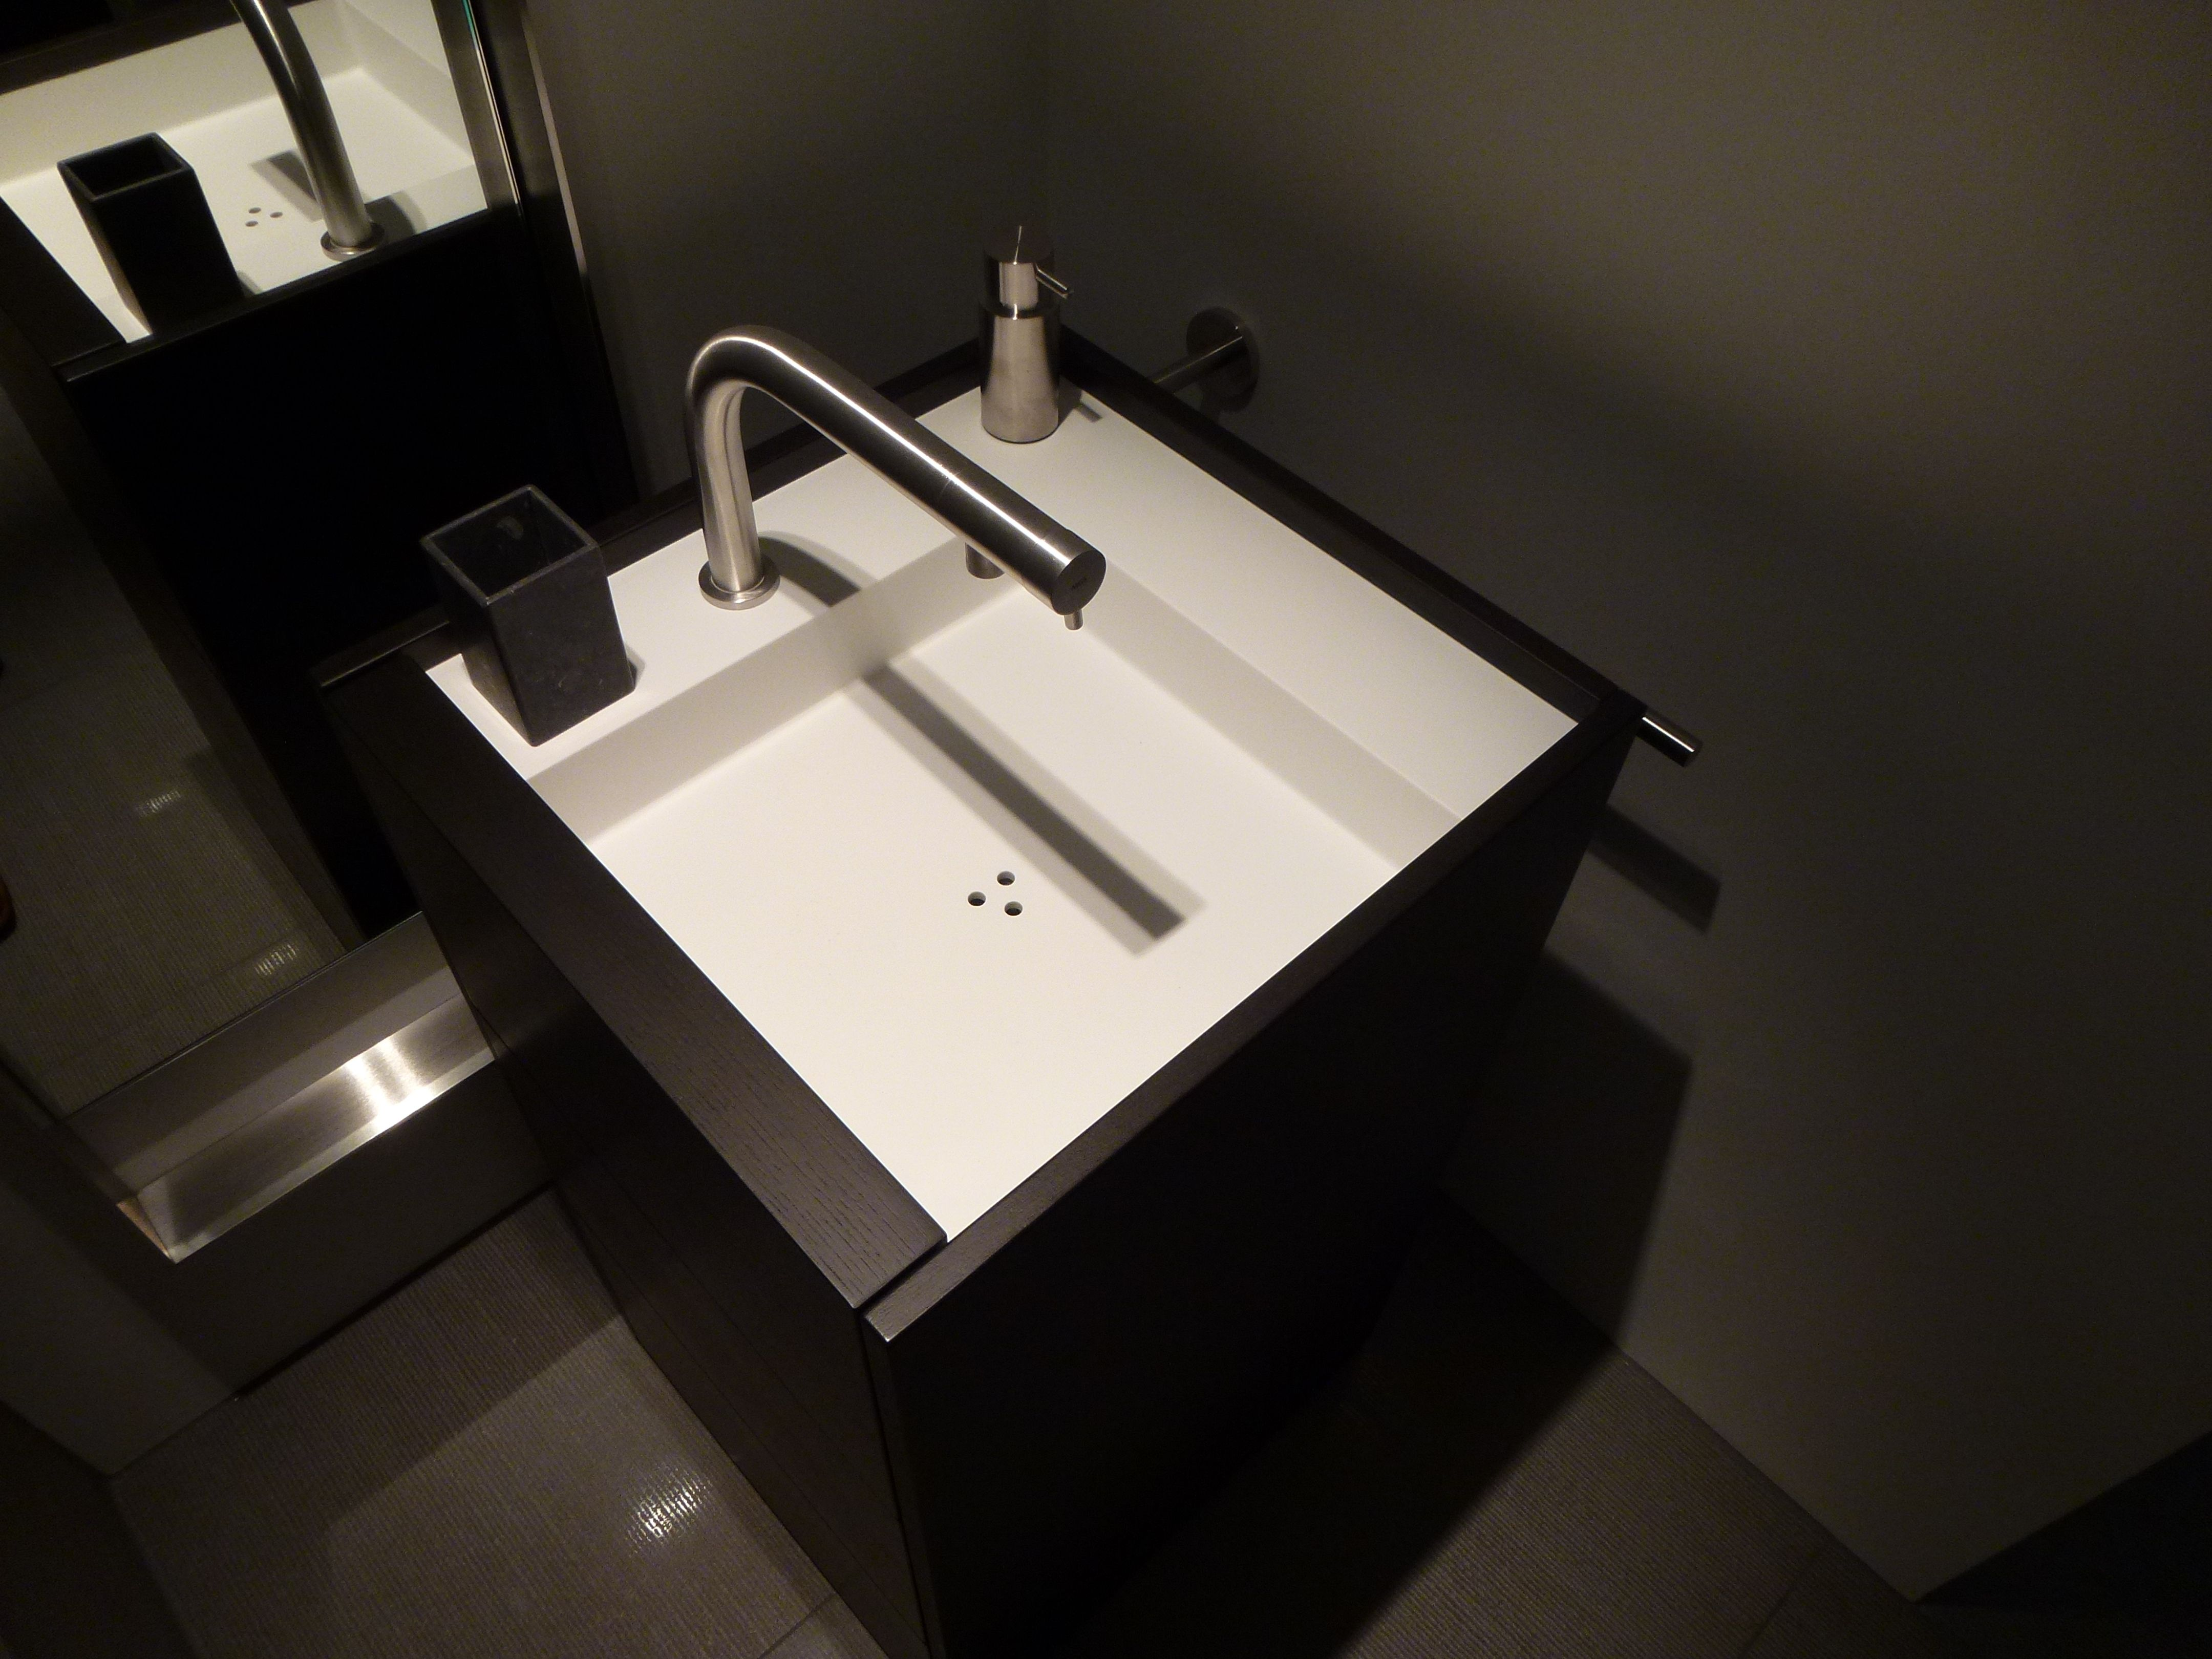 MGS MB4 washbasin tap. A tap fully made of stainless steel. Minimal to the max.